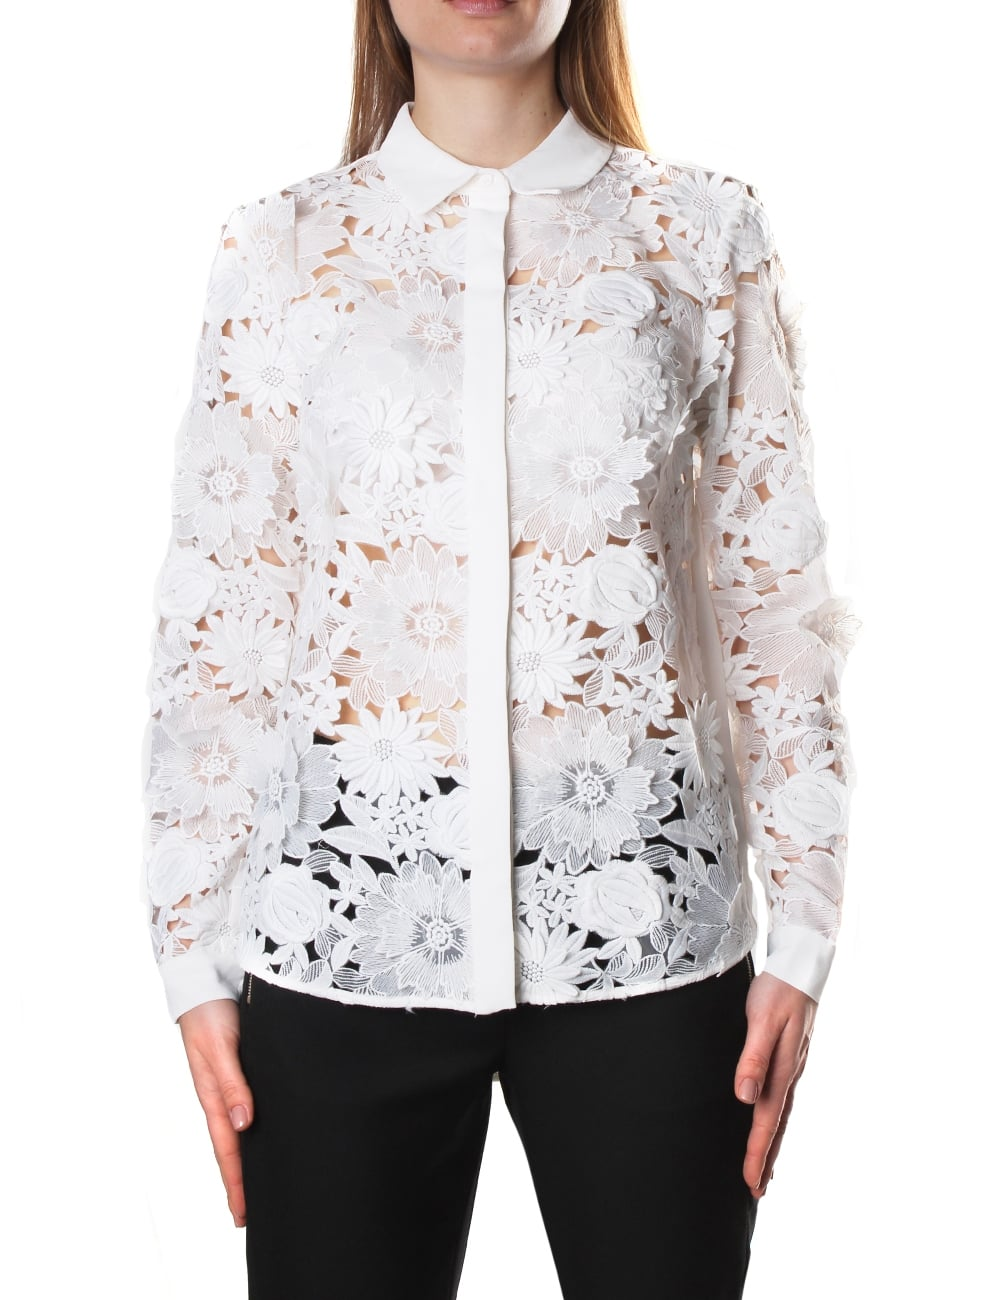 a87aeb15f6e84 French Connection Manzoni 3D Women's Floral Lace Shirt